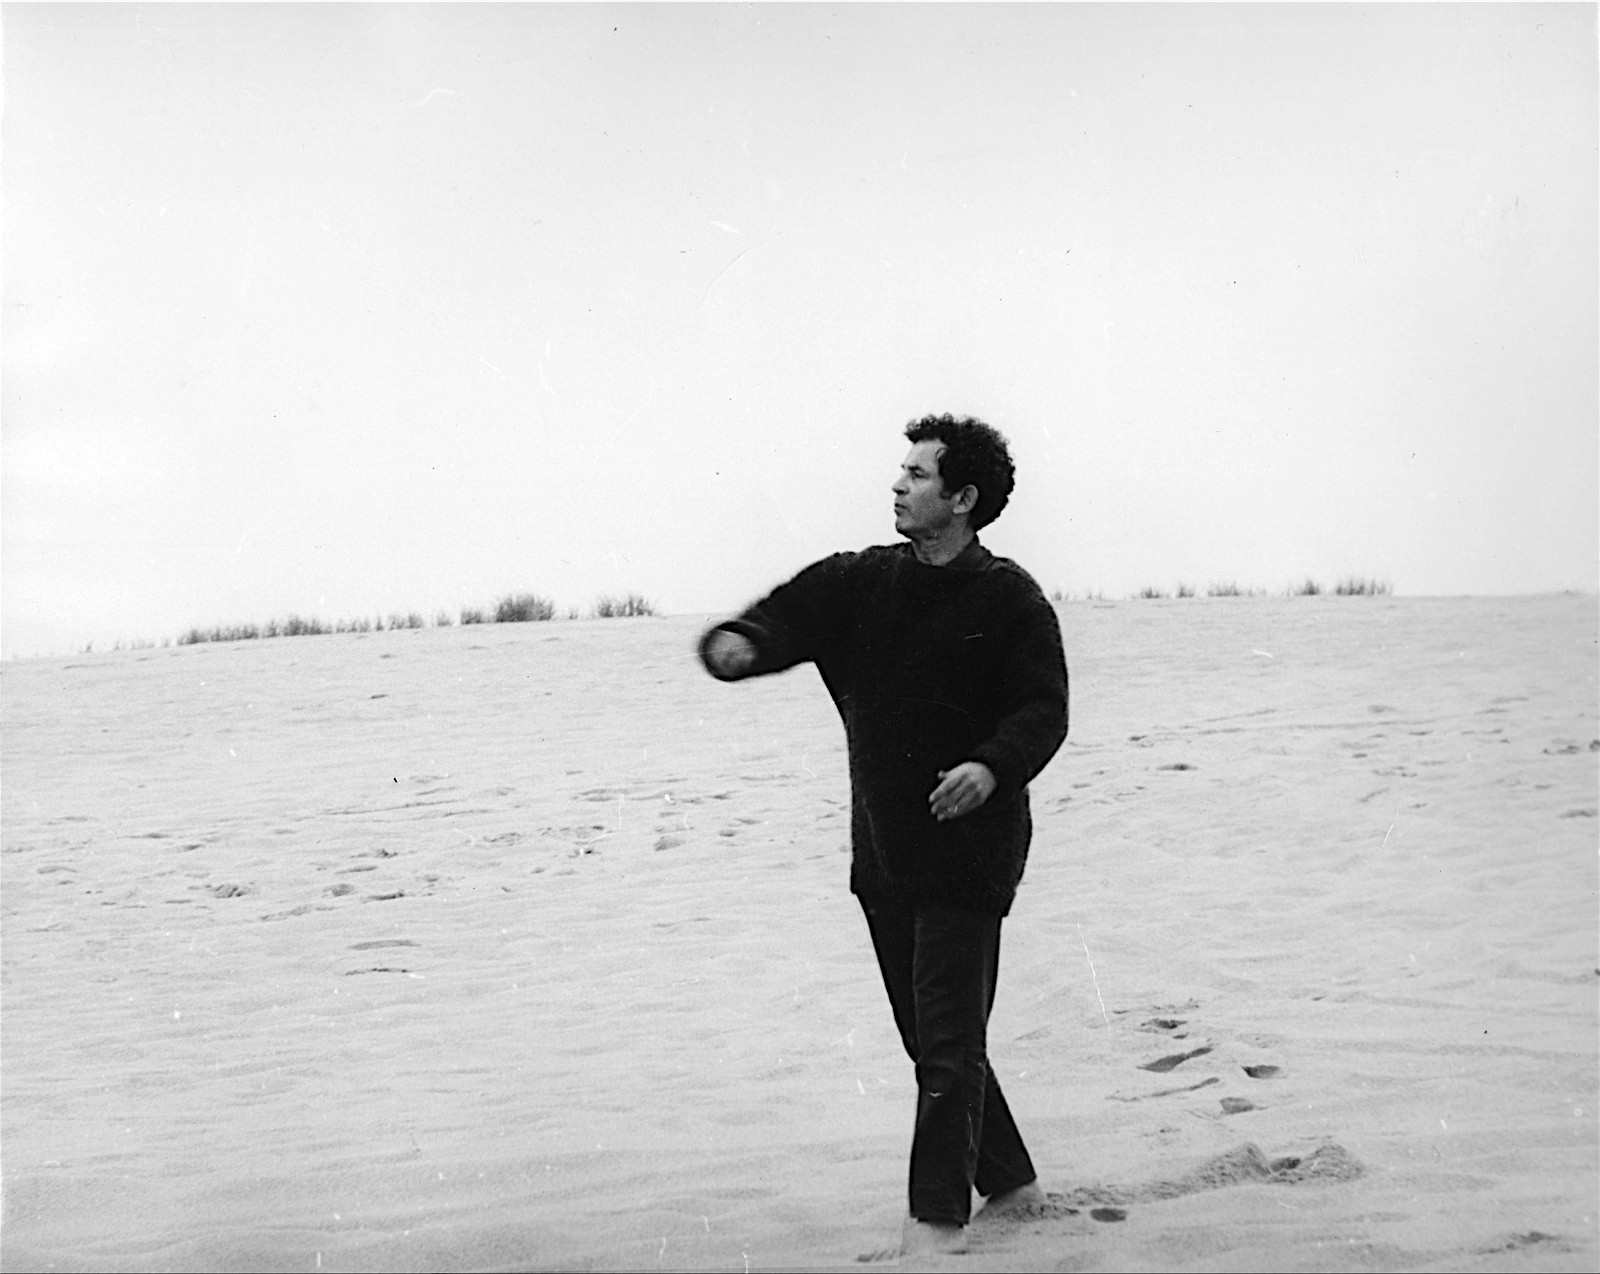 Norman Mailer on the Beach in Provincetown